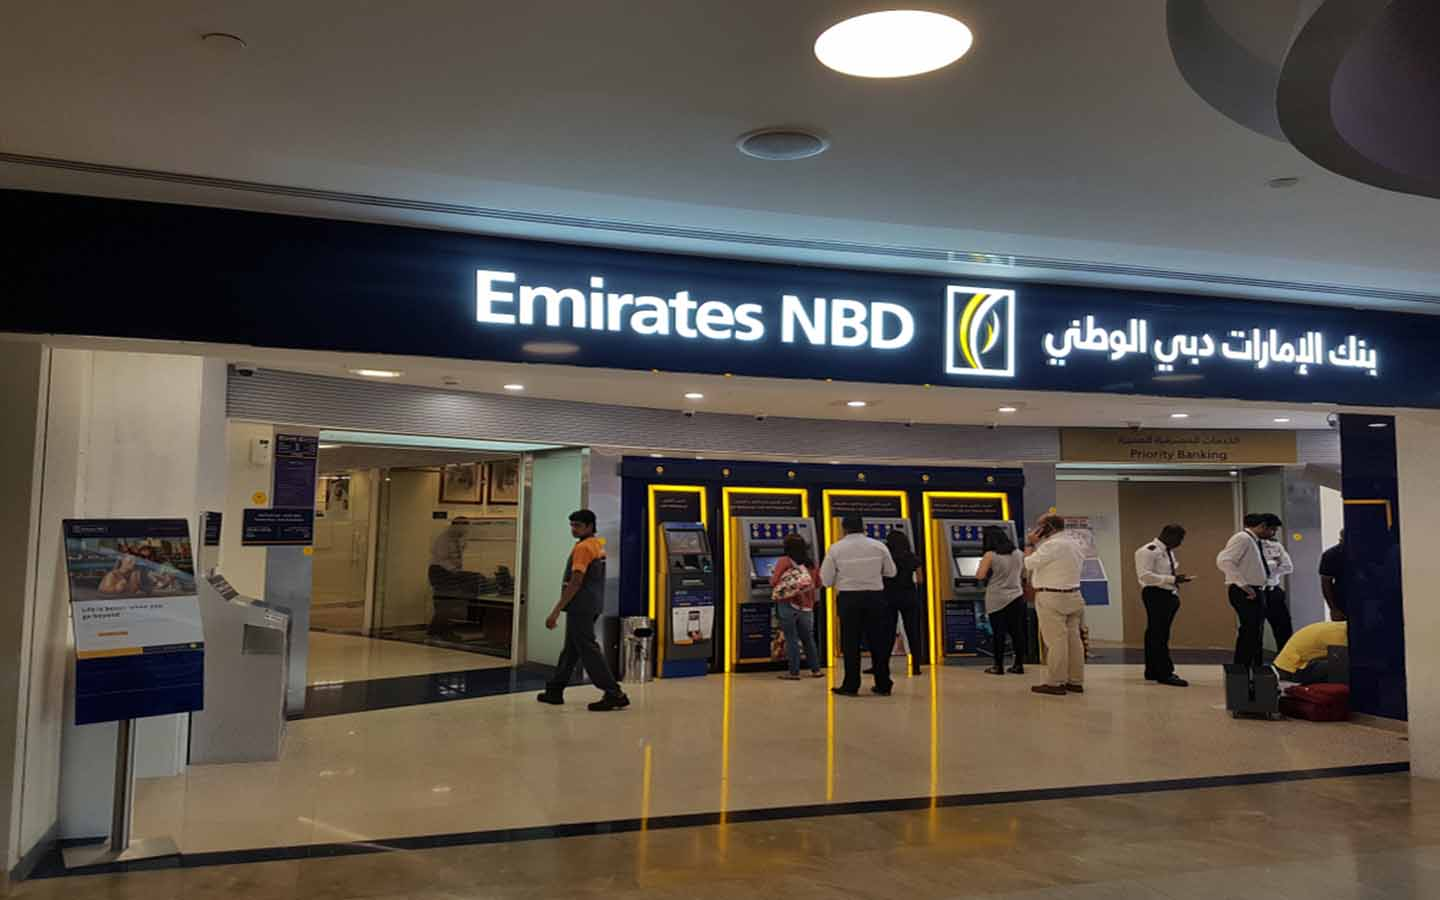 Emirates NBD in Dubai